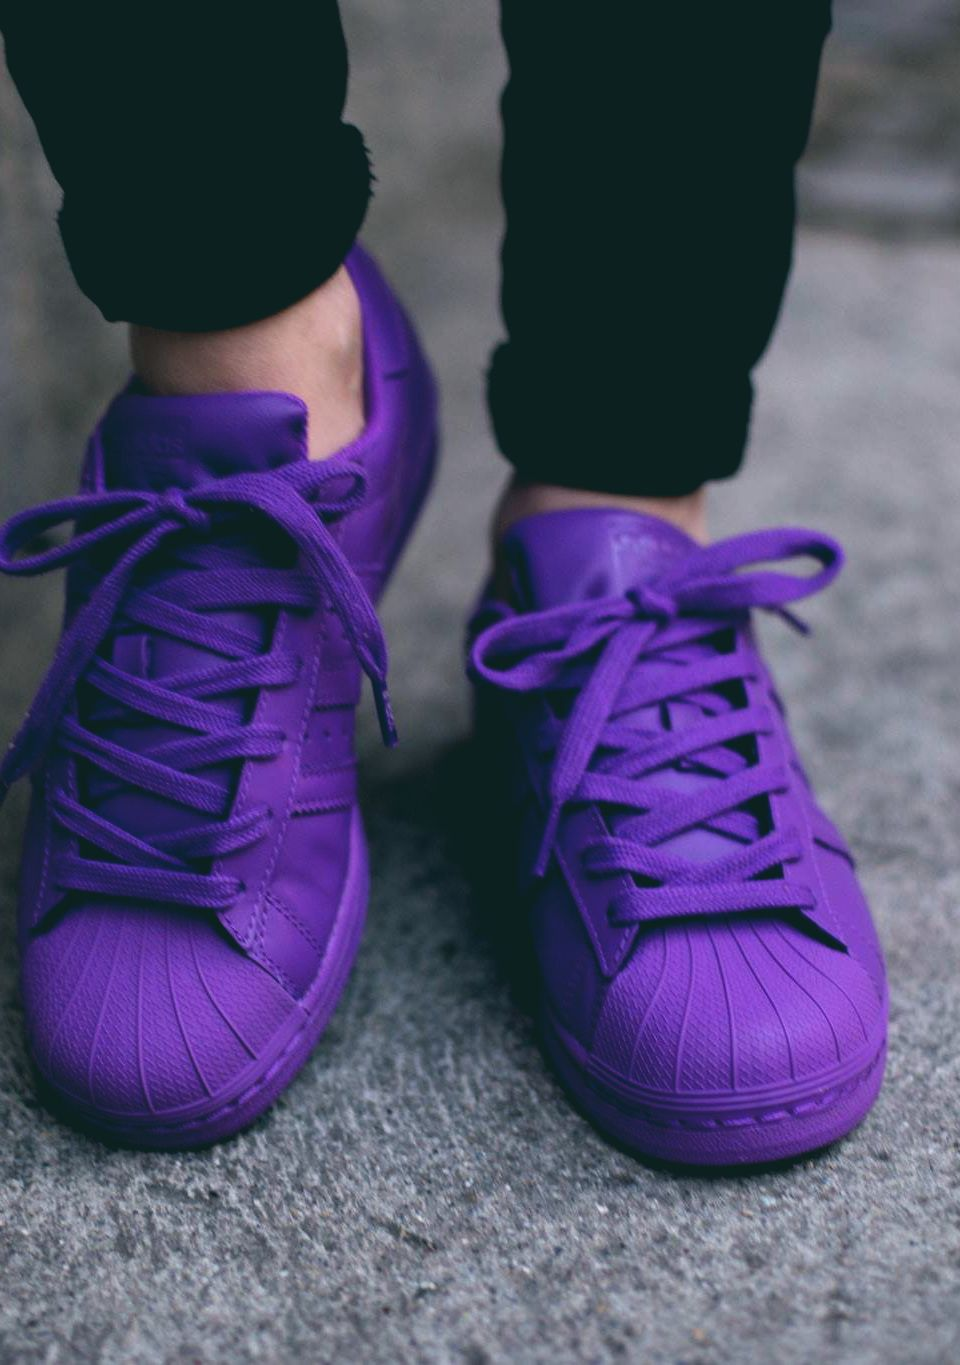 low priced 9d66b fb6e7 pies de mujer con tenis adidas superstar morado